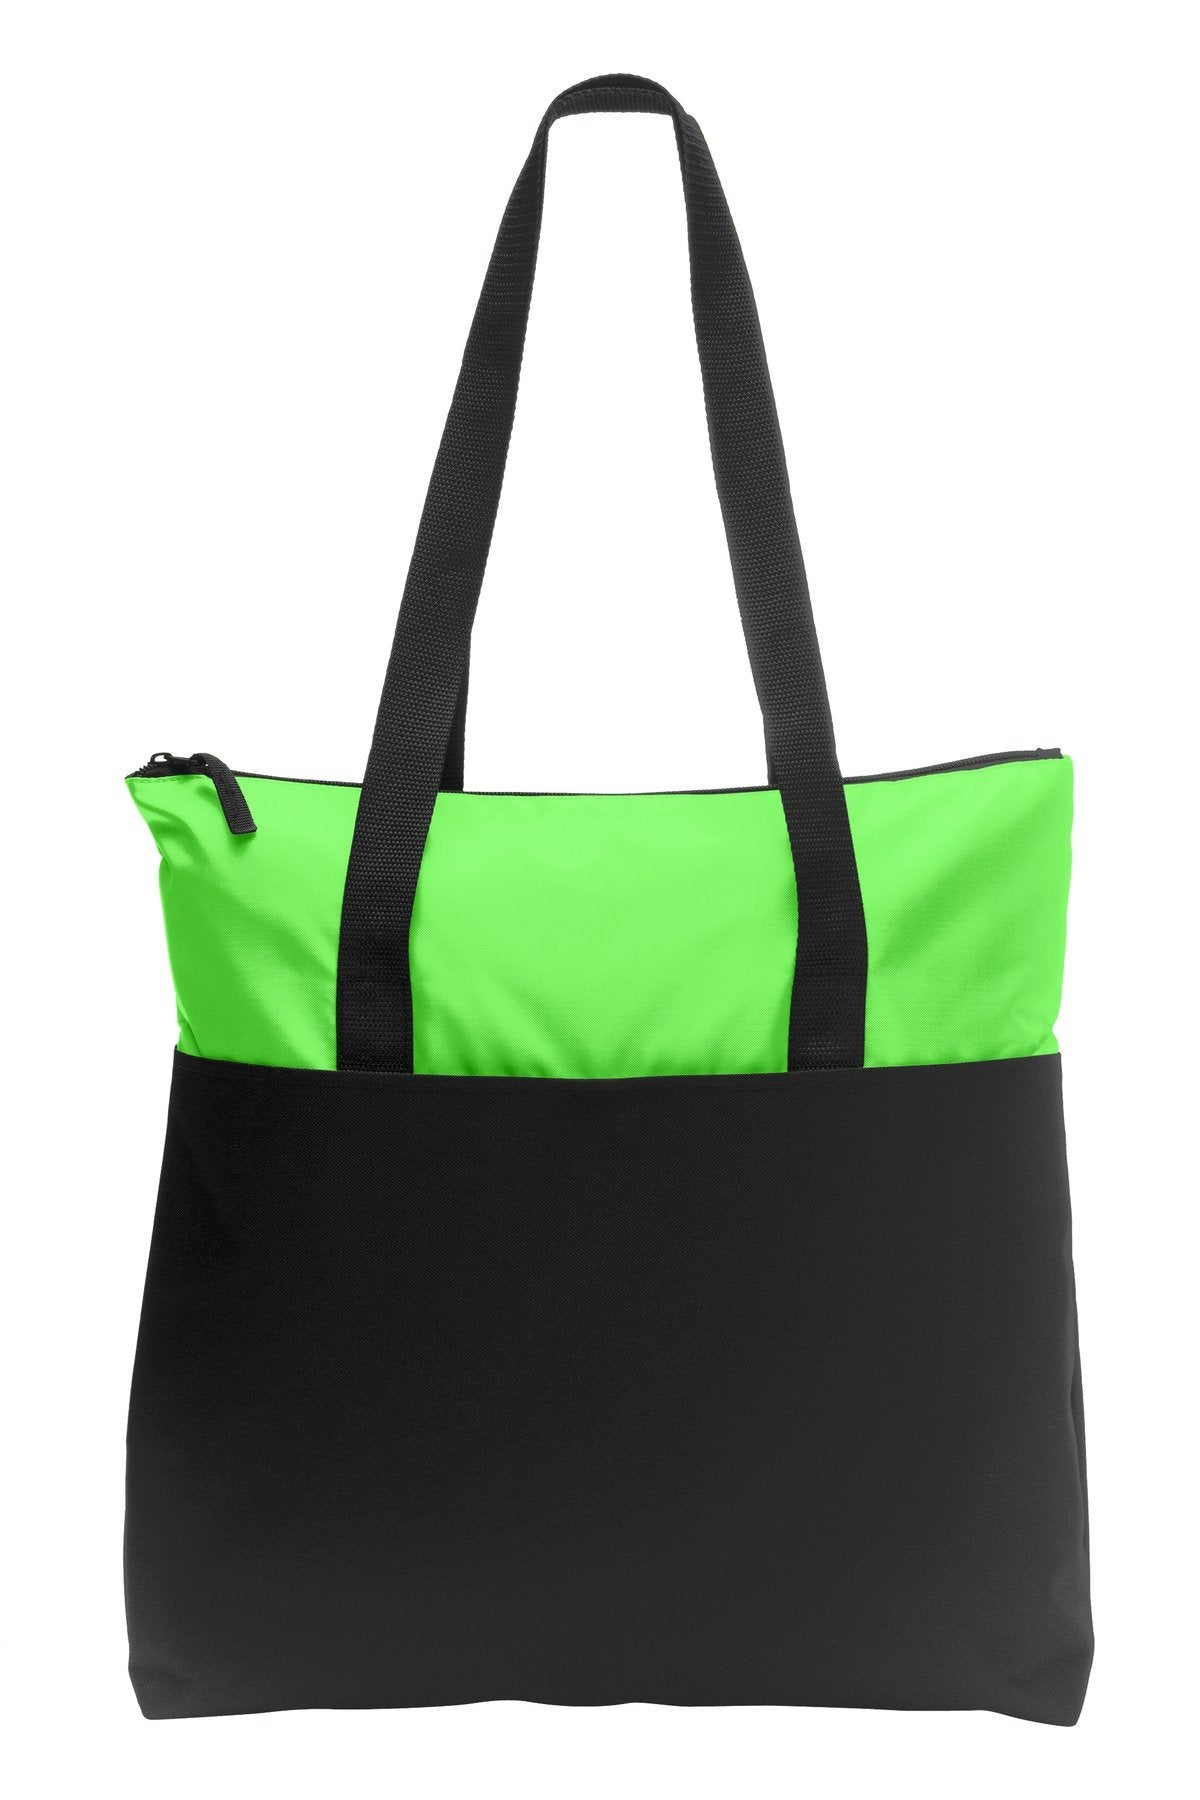 Bright Lime/ Black - Port Authority BG407